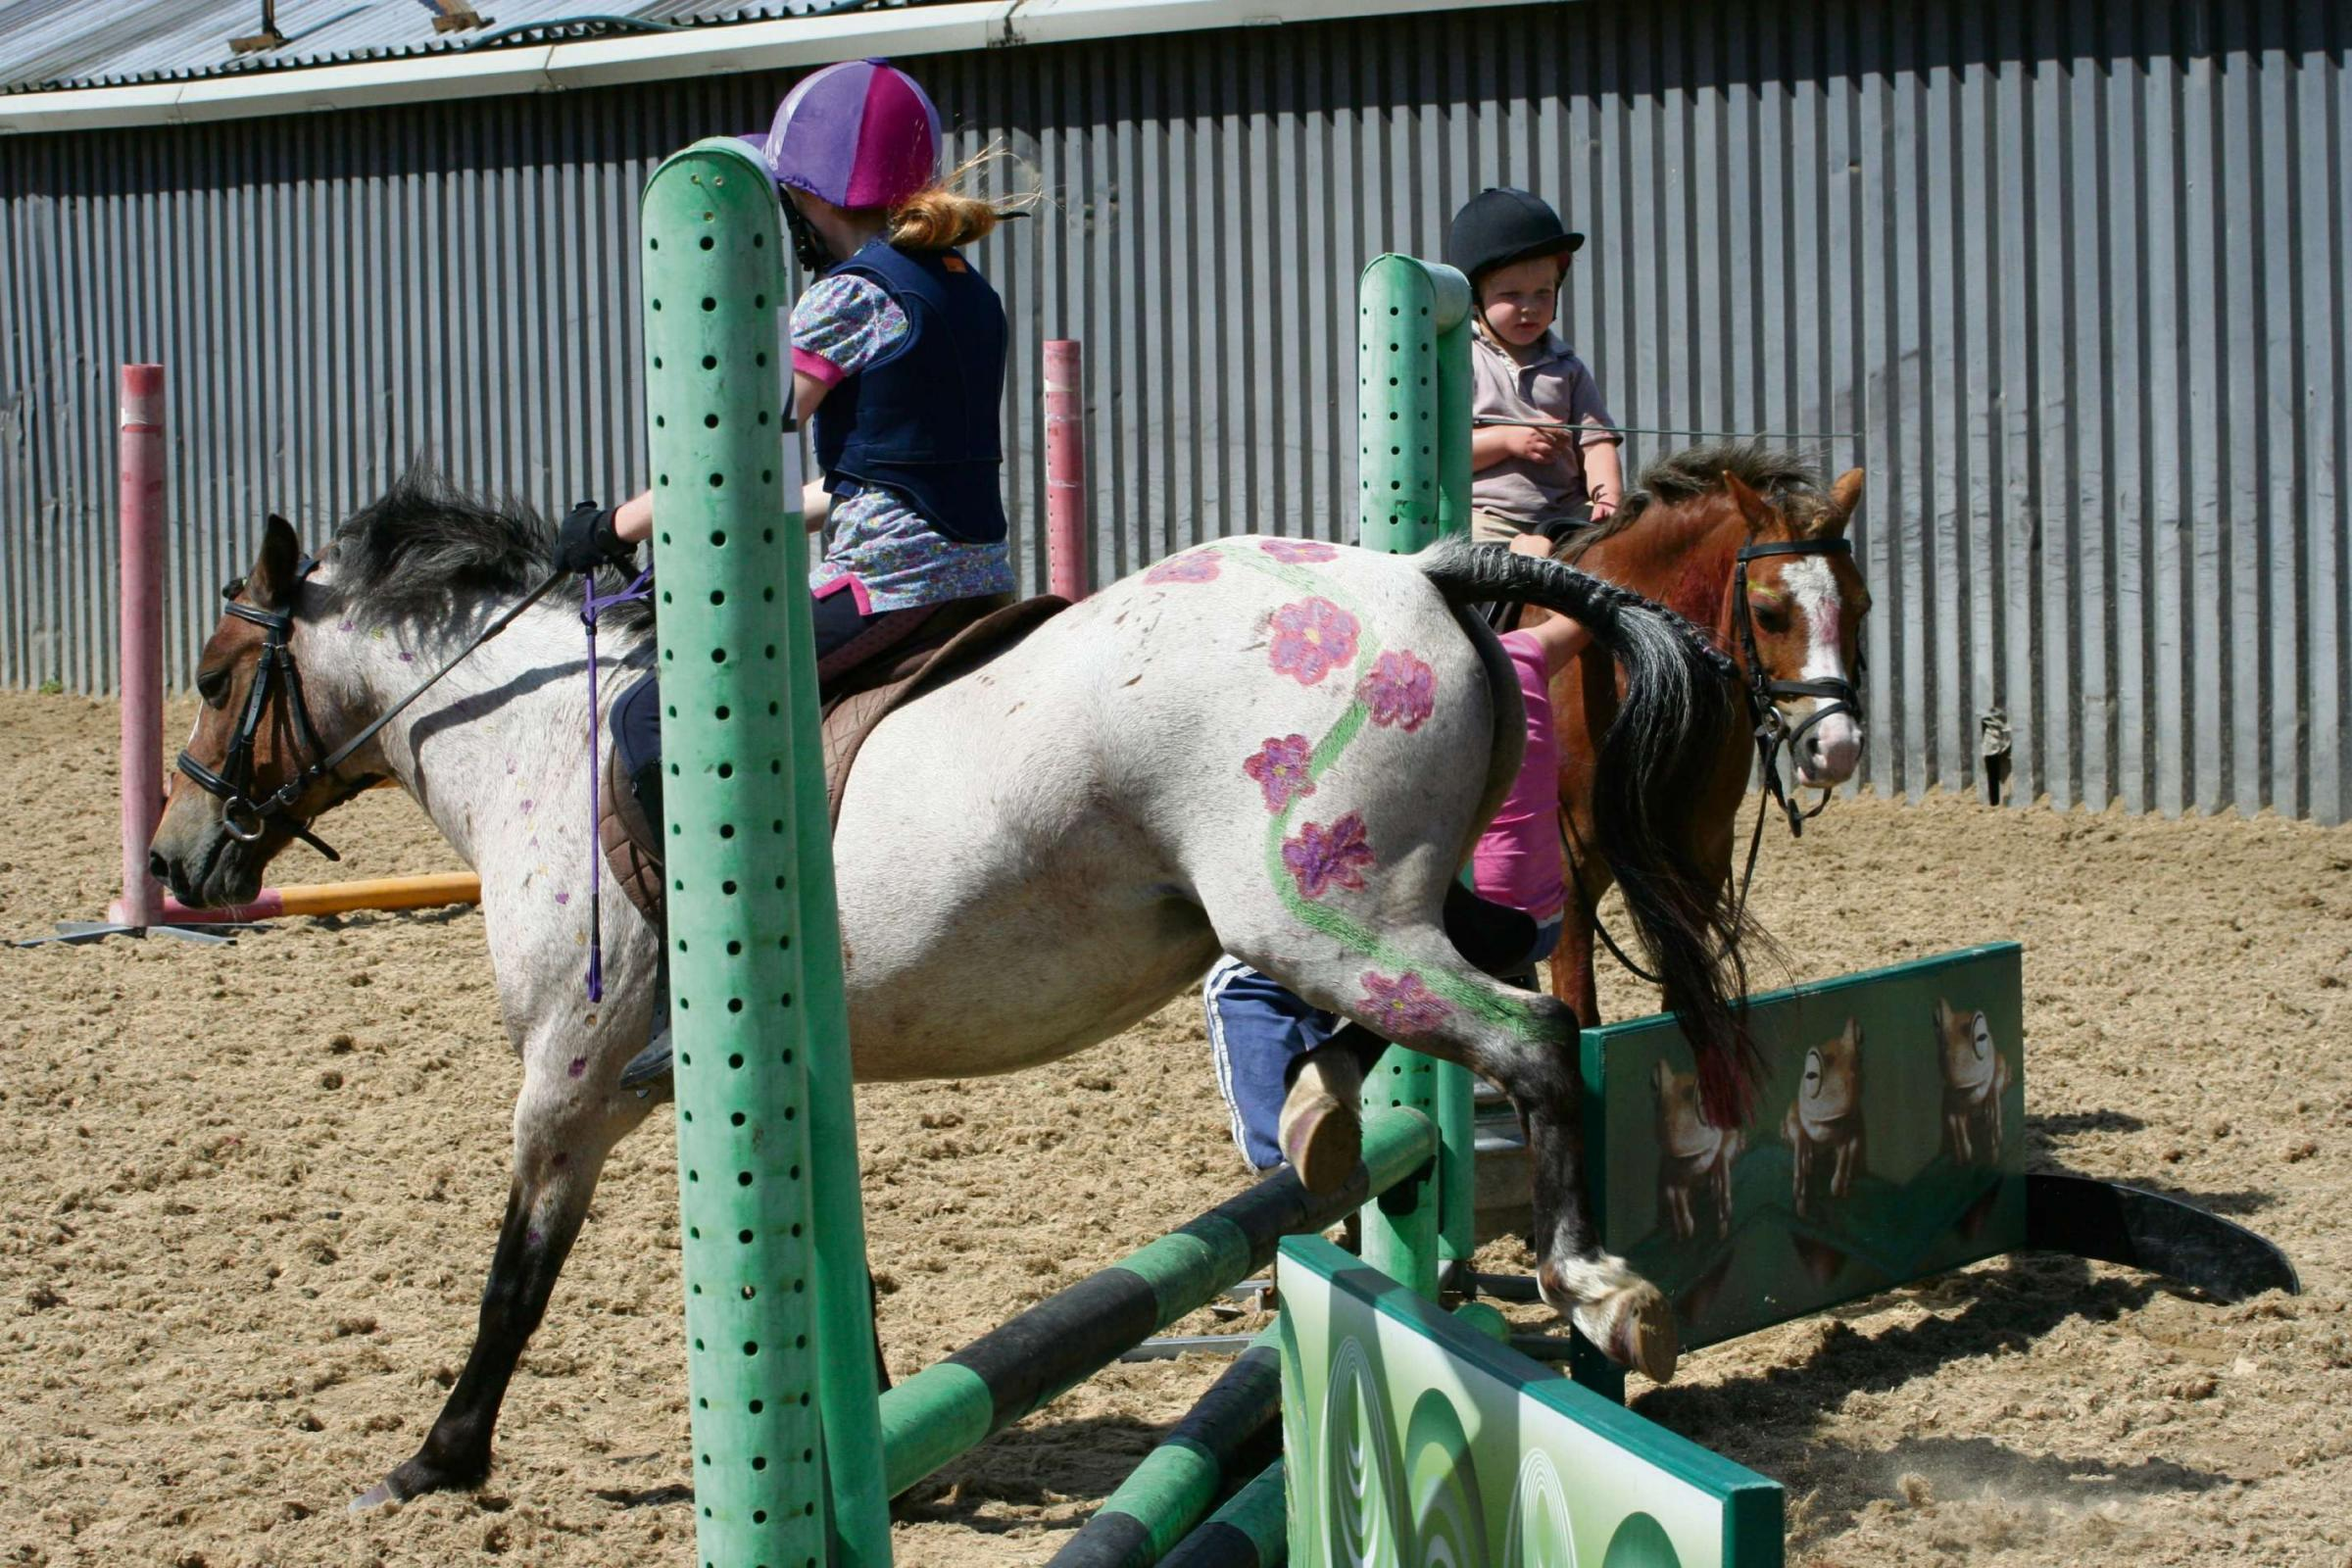 IT'S THE WEEKEND: Family fun - Pony club sessions in Chepstow for your little riders